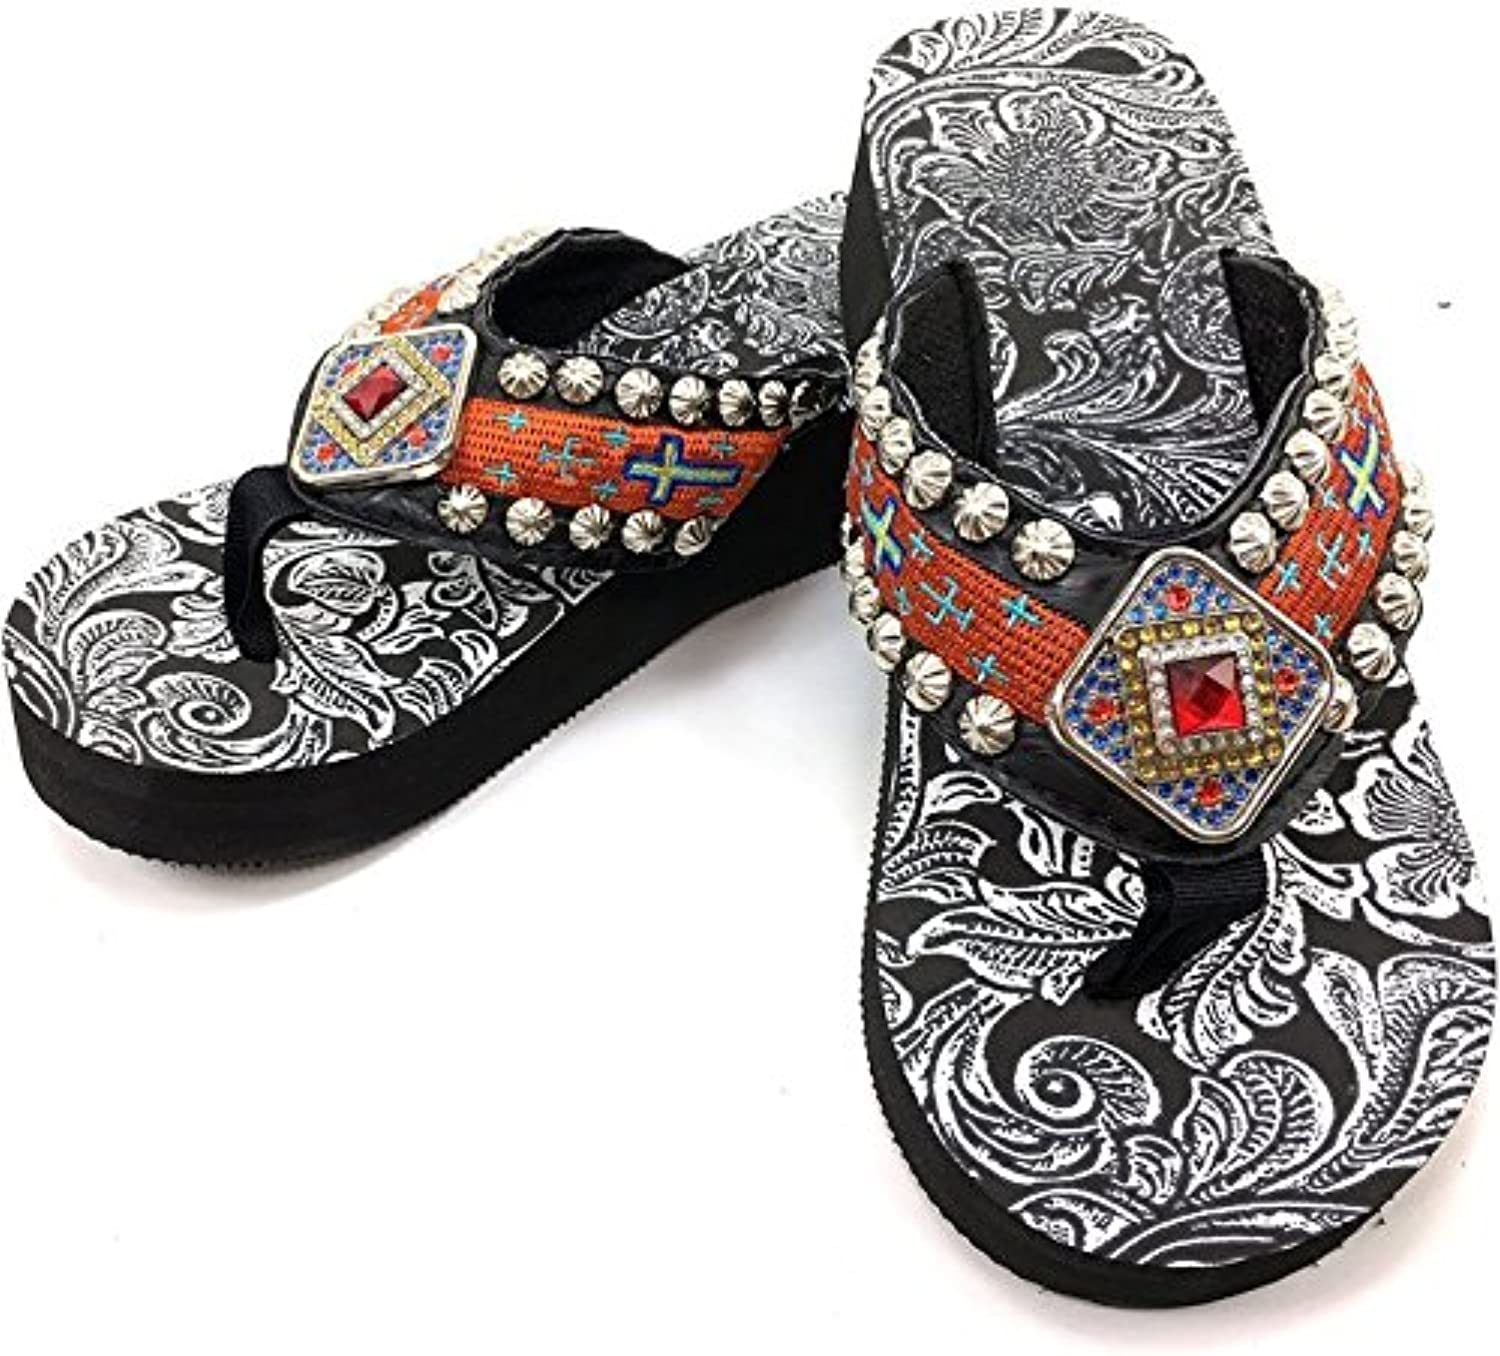 Western Peak Women's Concho Rhinestones and Stud with Embroidery orange PU Sandal Flip Flop